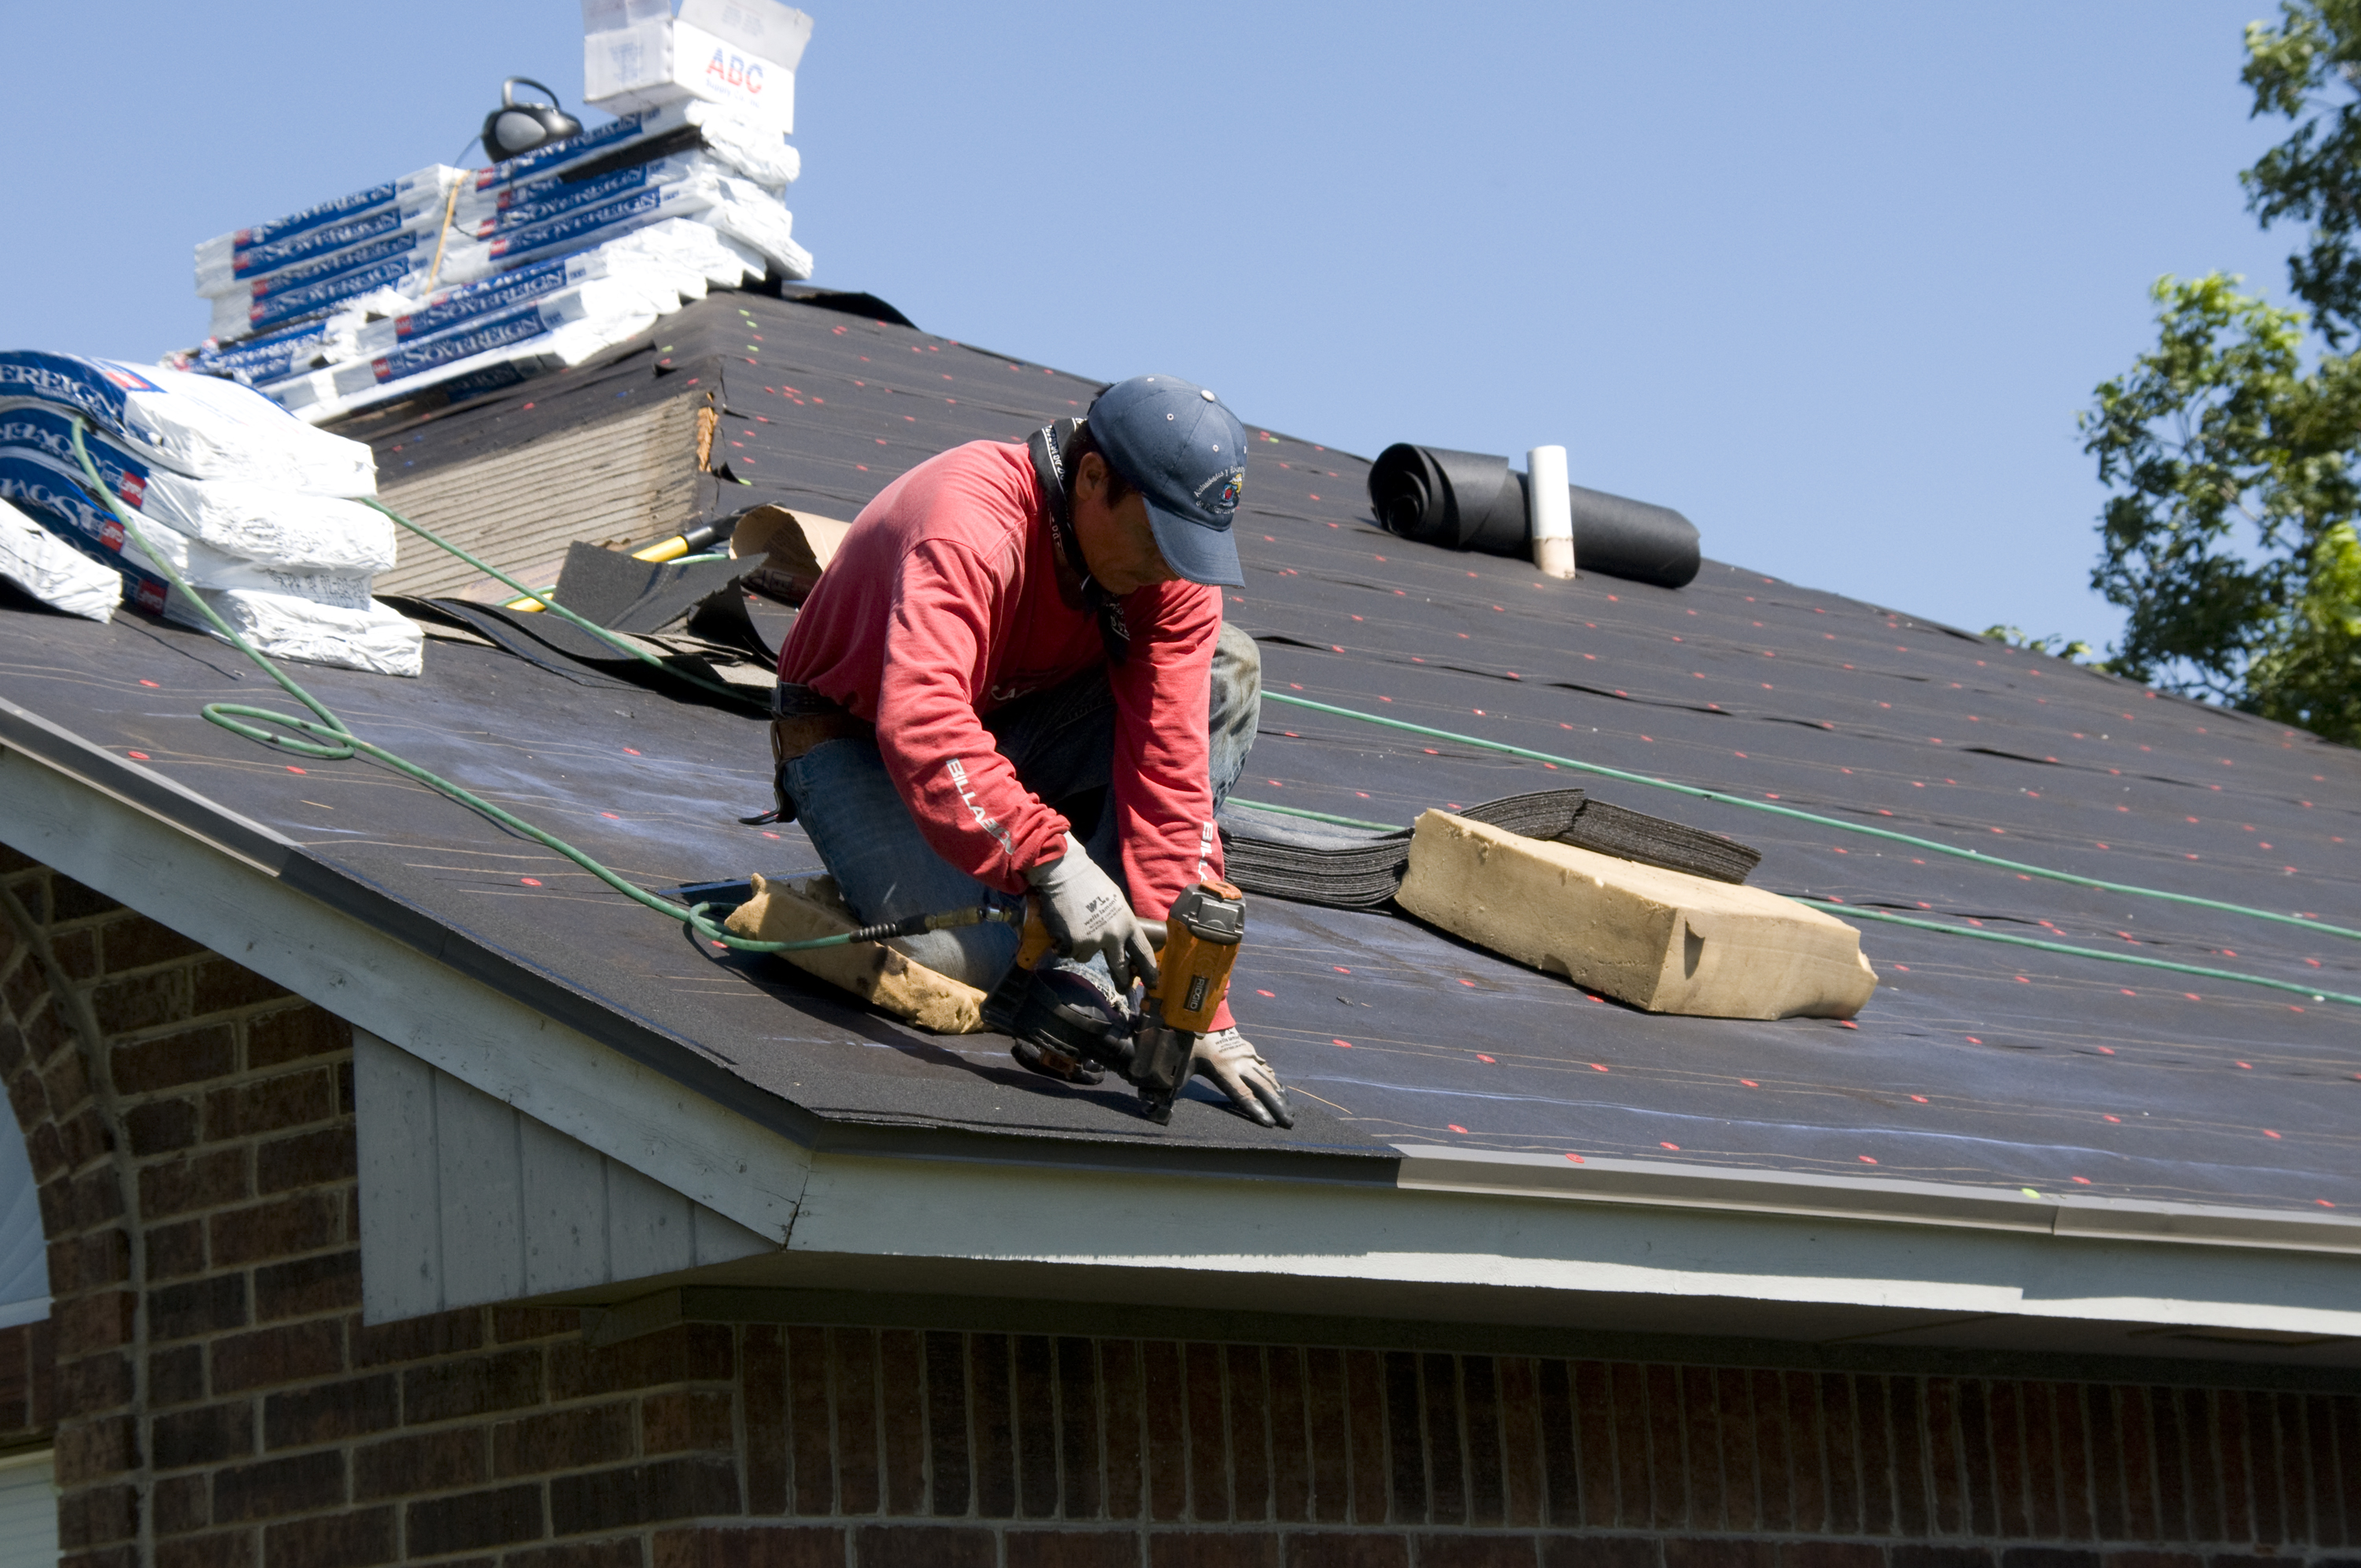 http://upload.wikimedia.org/wikipedia/commons/1/1e/FEMA_-_44634_-_Roofer_working_on_a_home_in_Oklahoma.jpg?uselang=en-gb